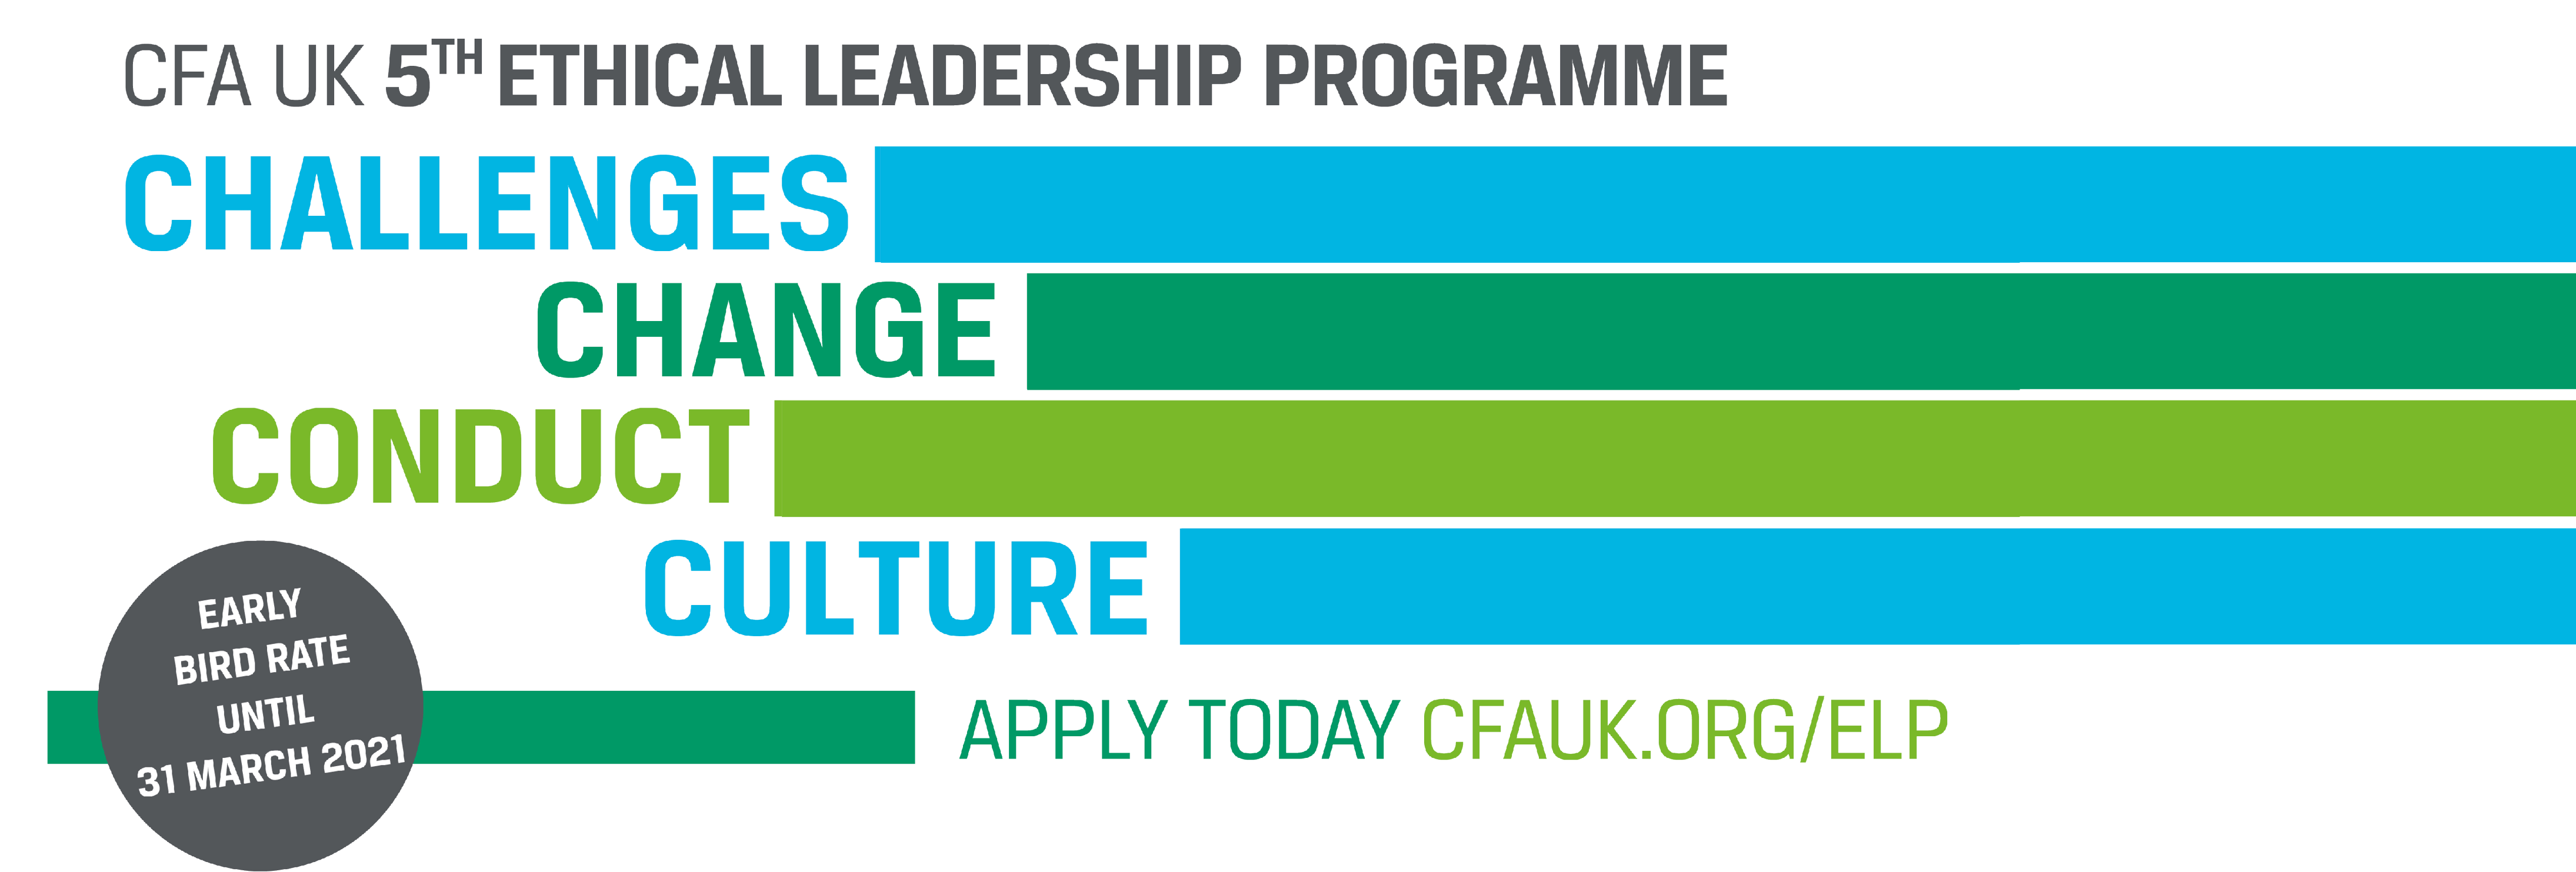 Picture of CFA UK Ethical Leadership Programme